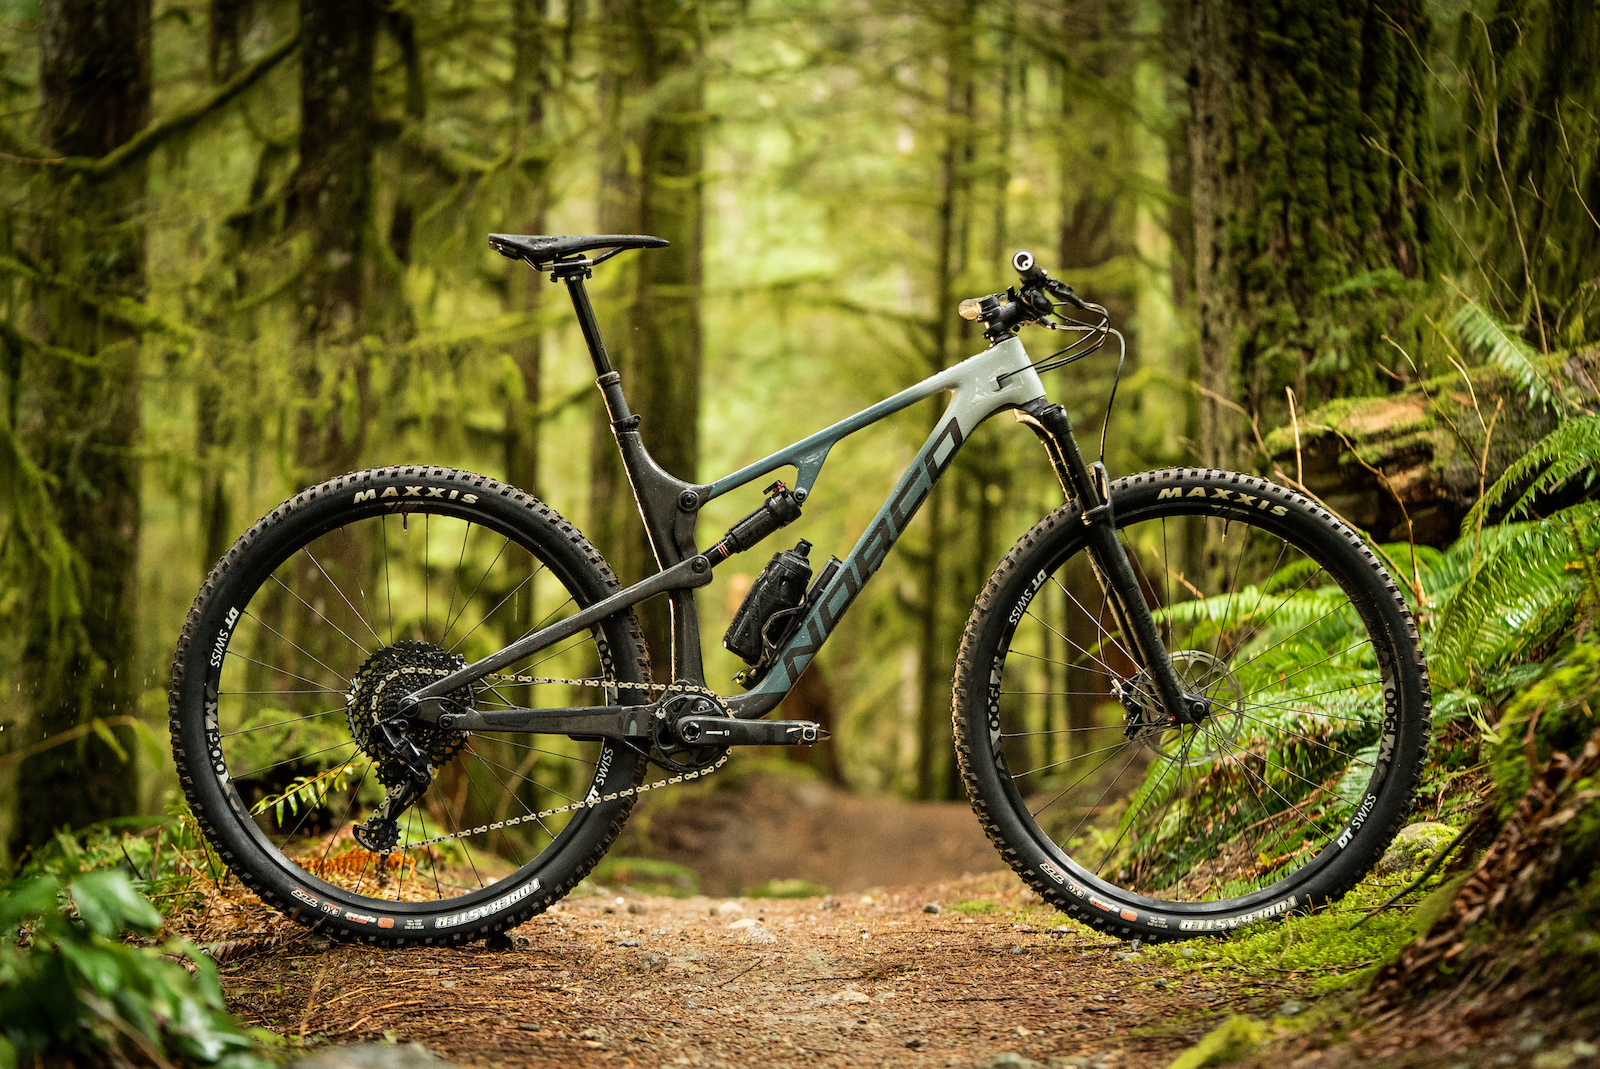 Best Xc Mountain Bike 2020 First Ride: Norco's 2020 Revolver Cross Country Bike   Pinkbike